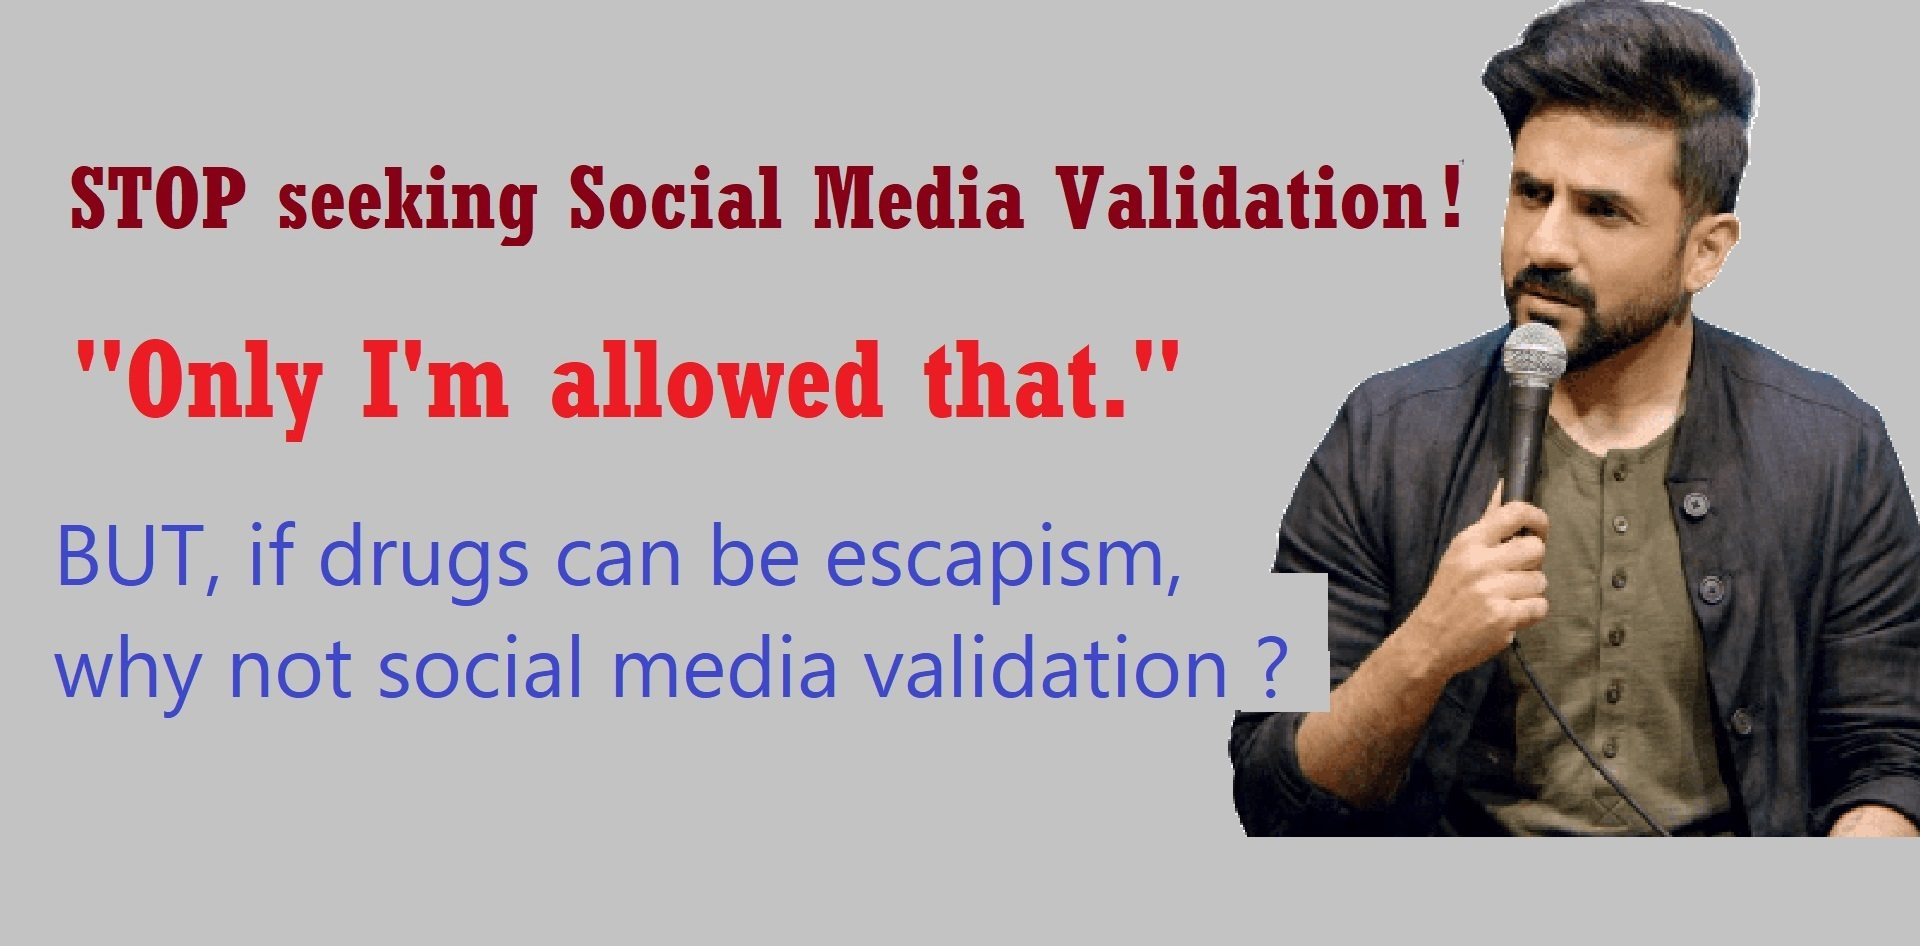 Is Seeking Social Media Validation Just for Losers?